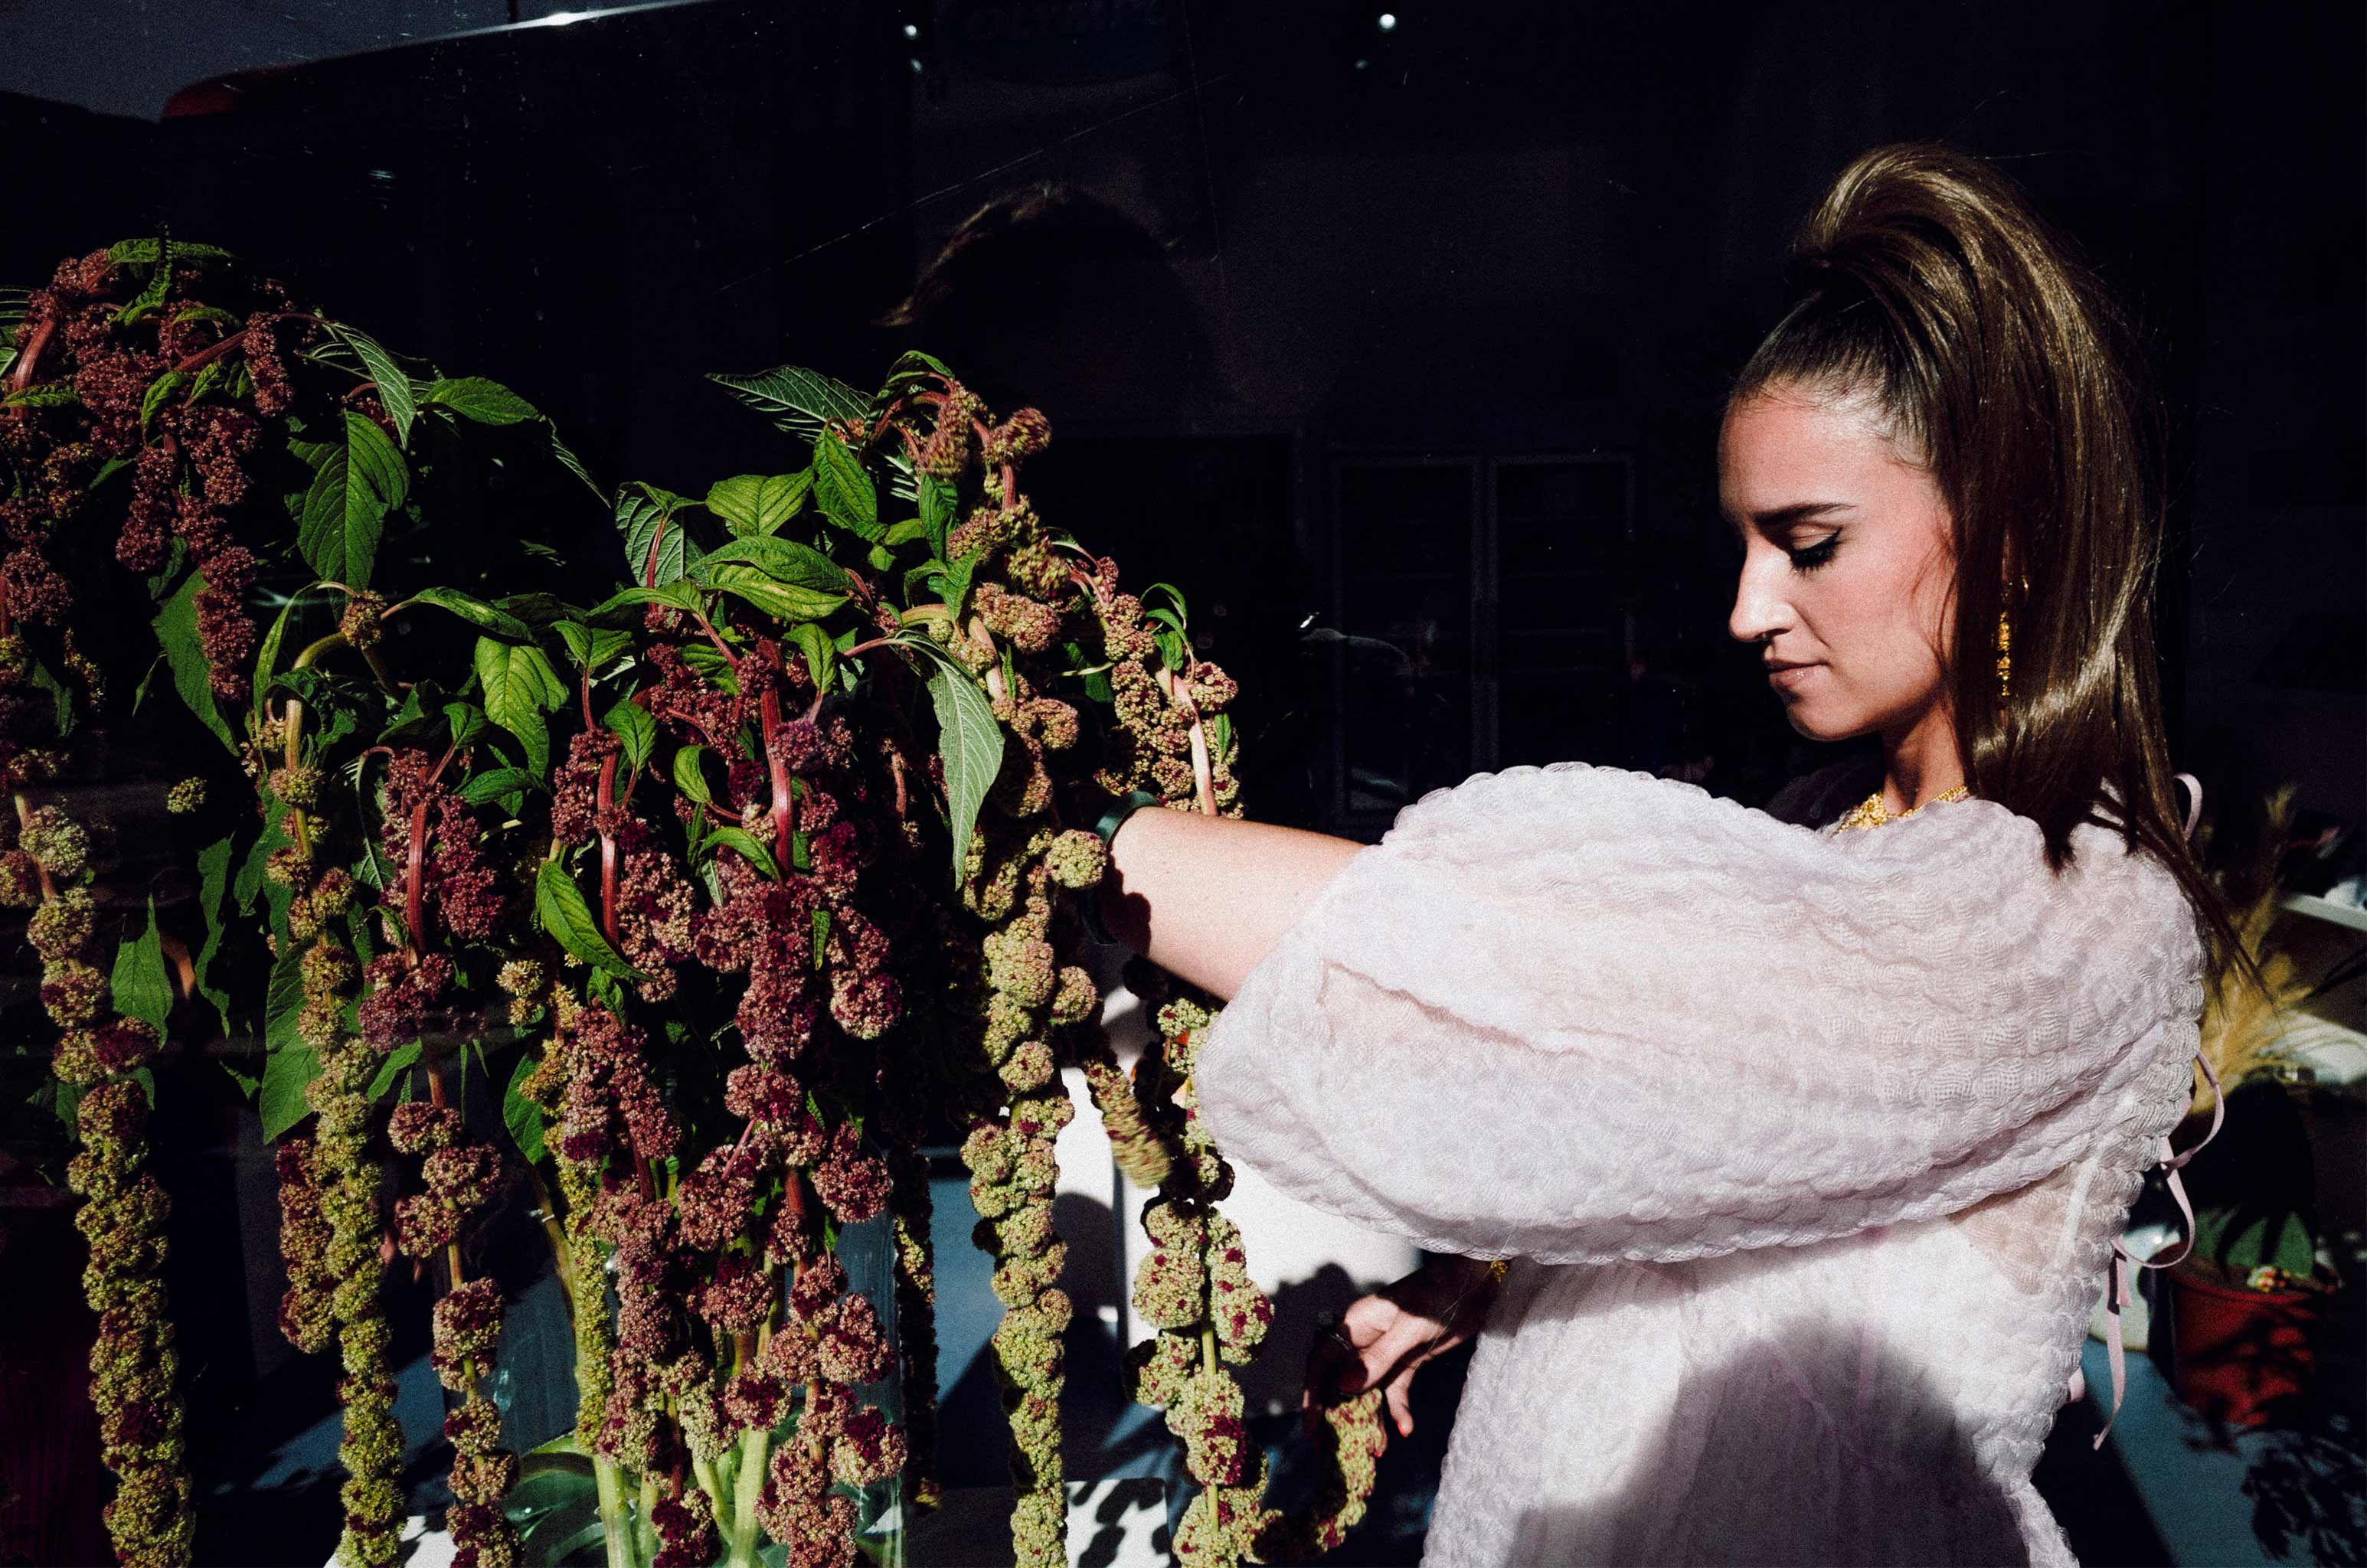 Iona, Romy, Flowers and Everything - © Lauwd